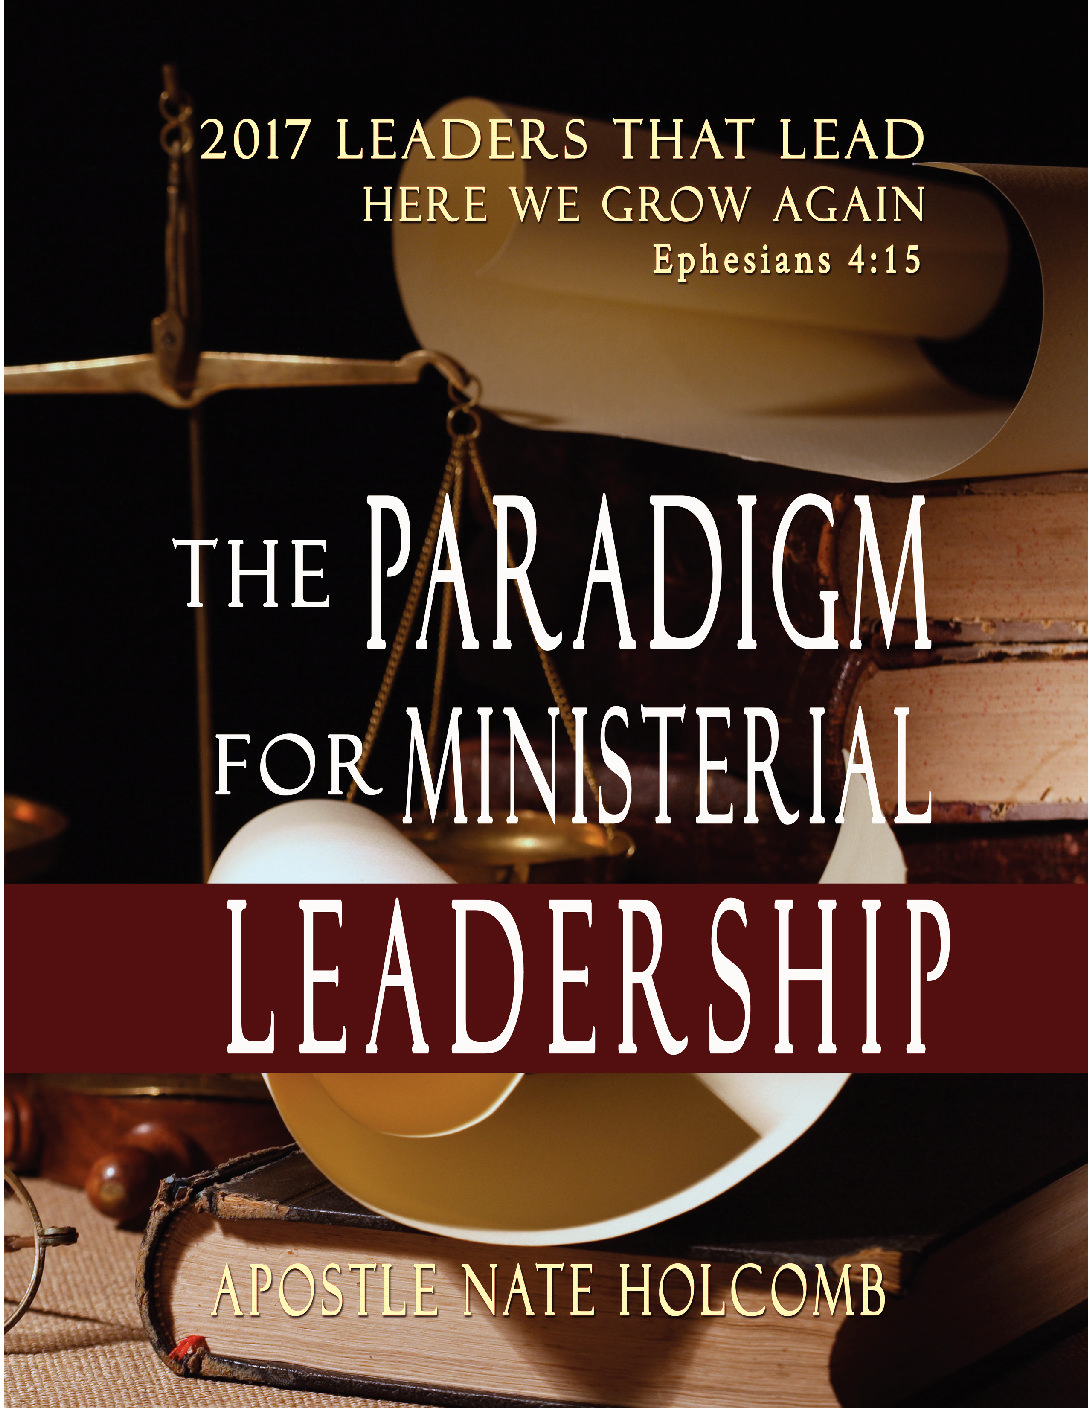 The Paradigm for Ministerial Leadership